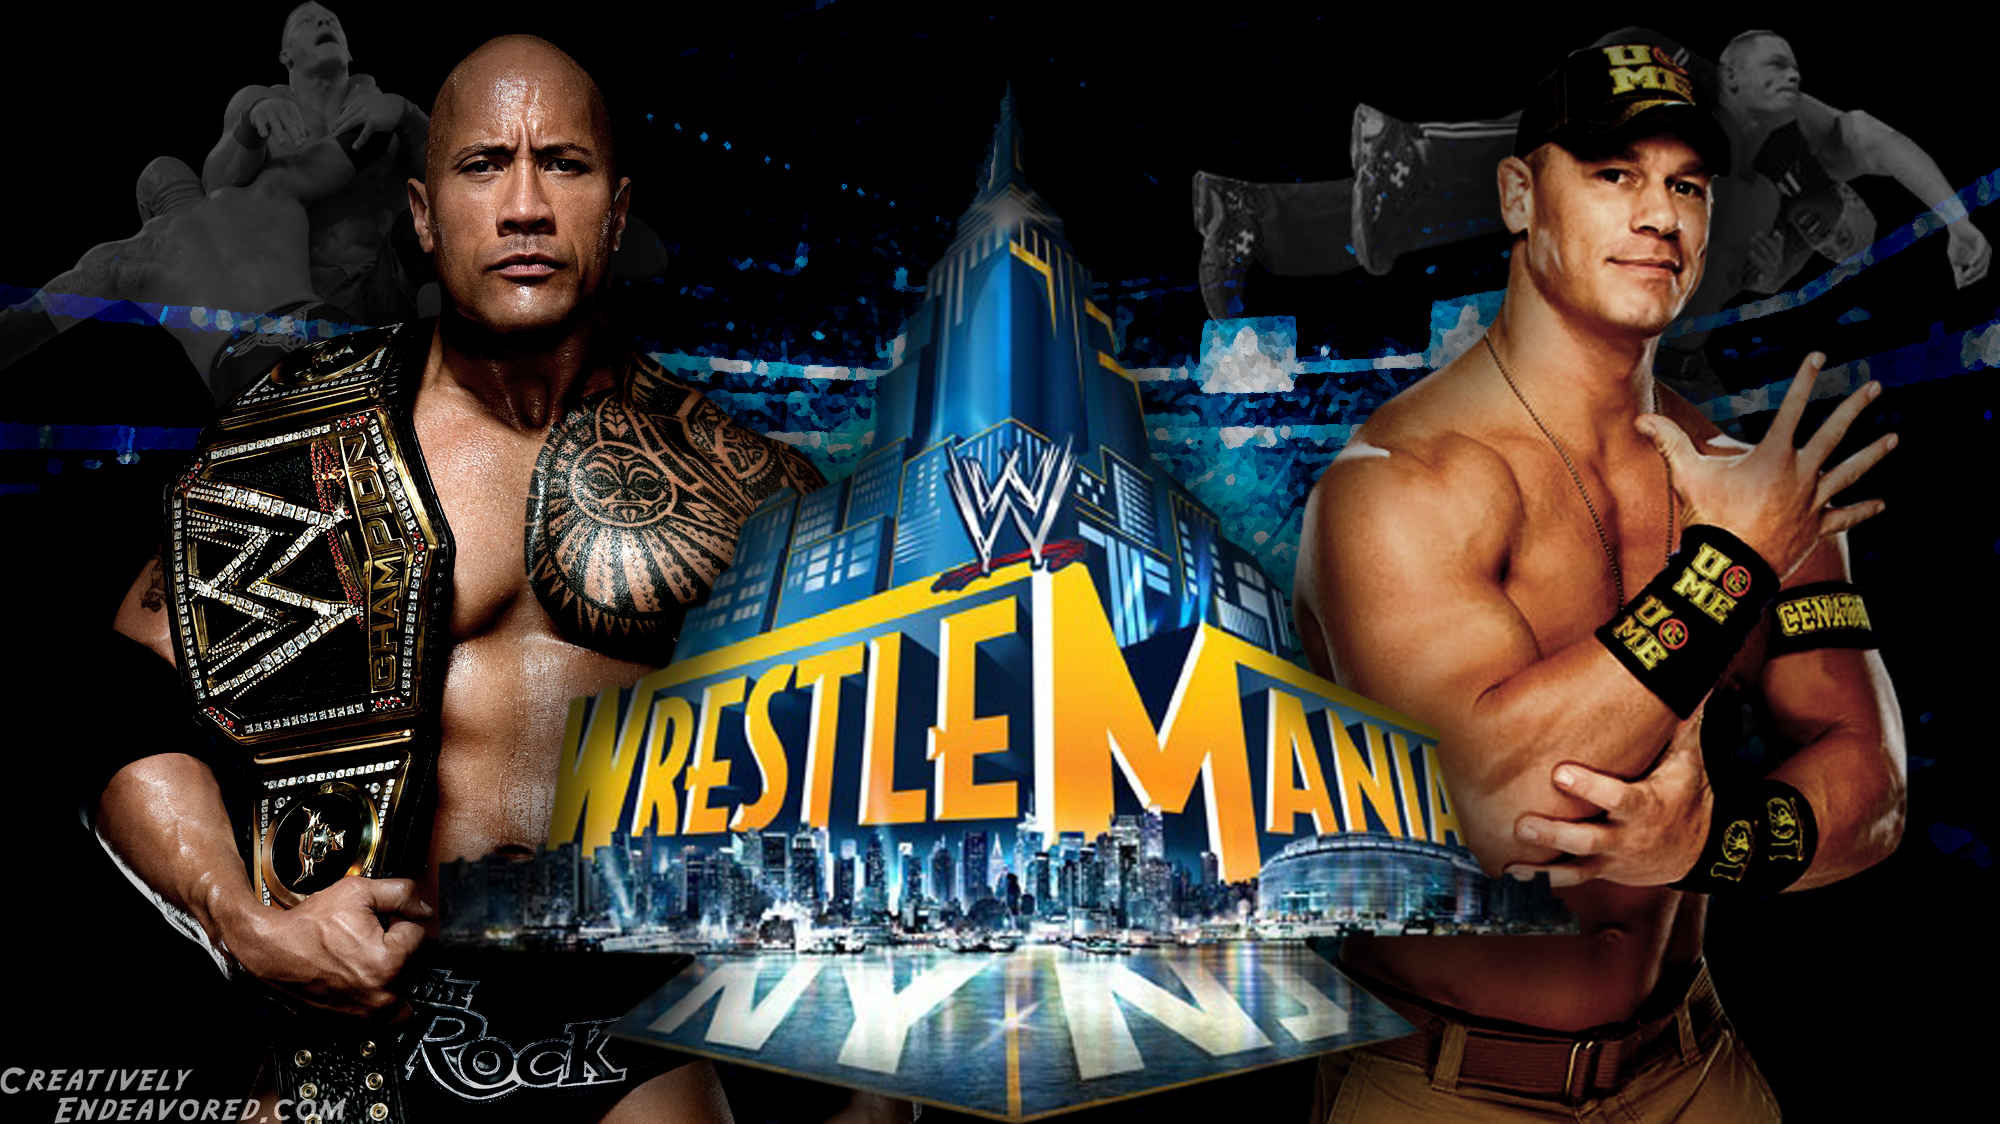 WWE The Rock vs John Cena WrestleMania 29